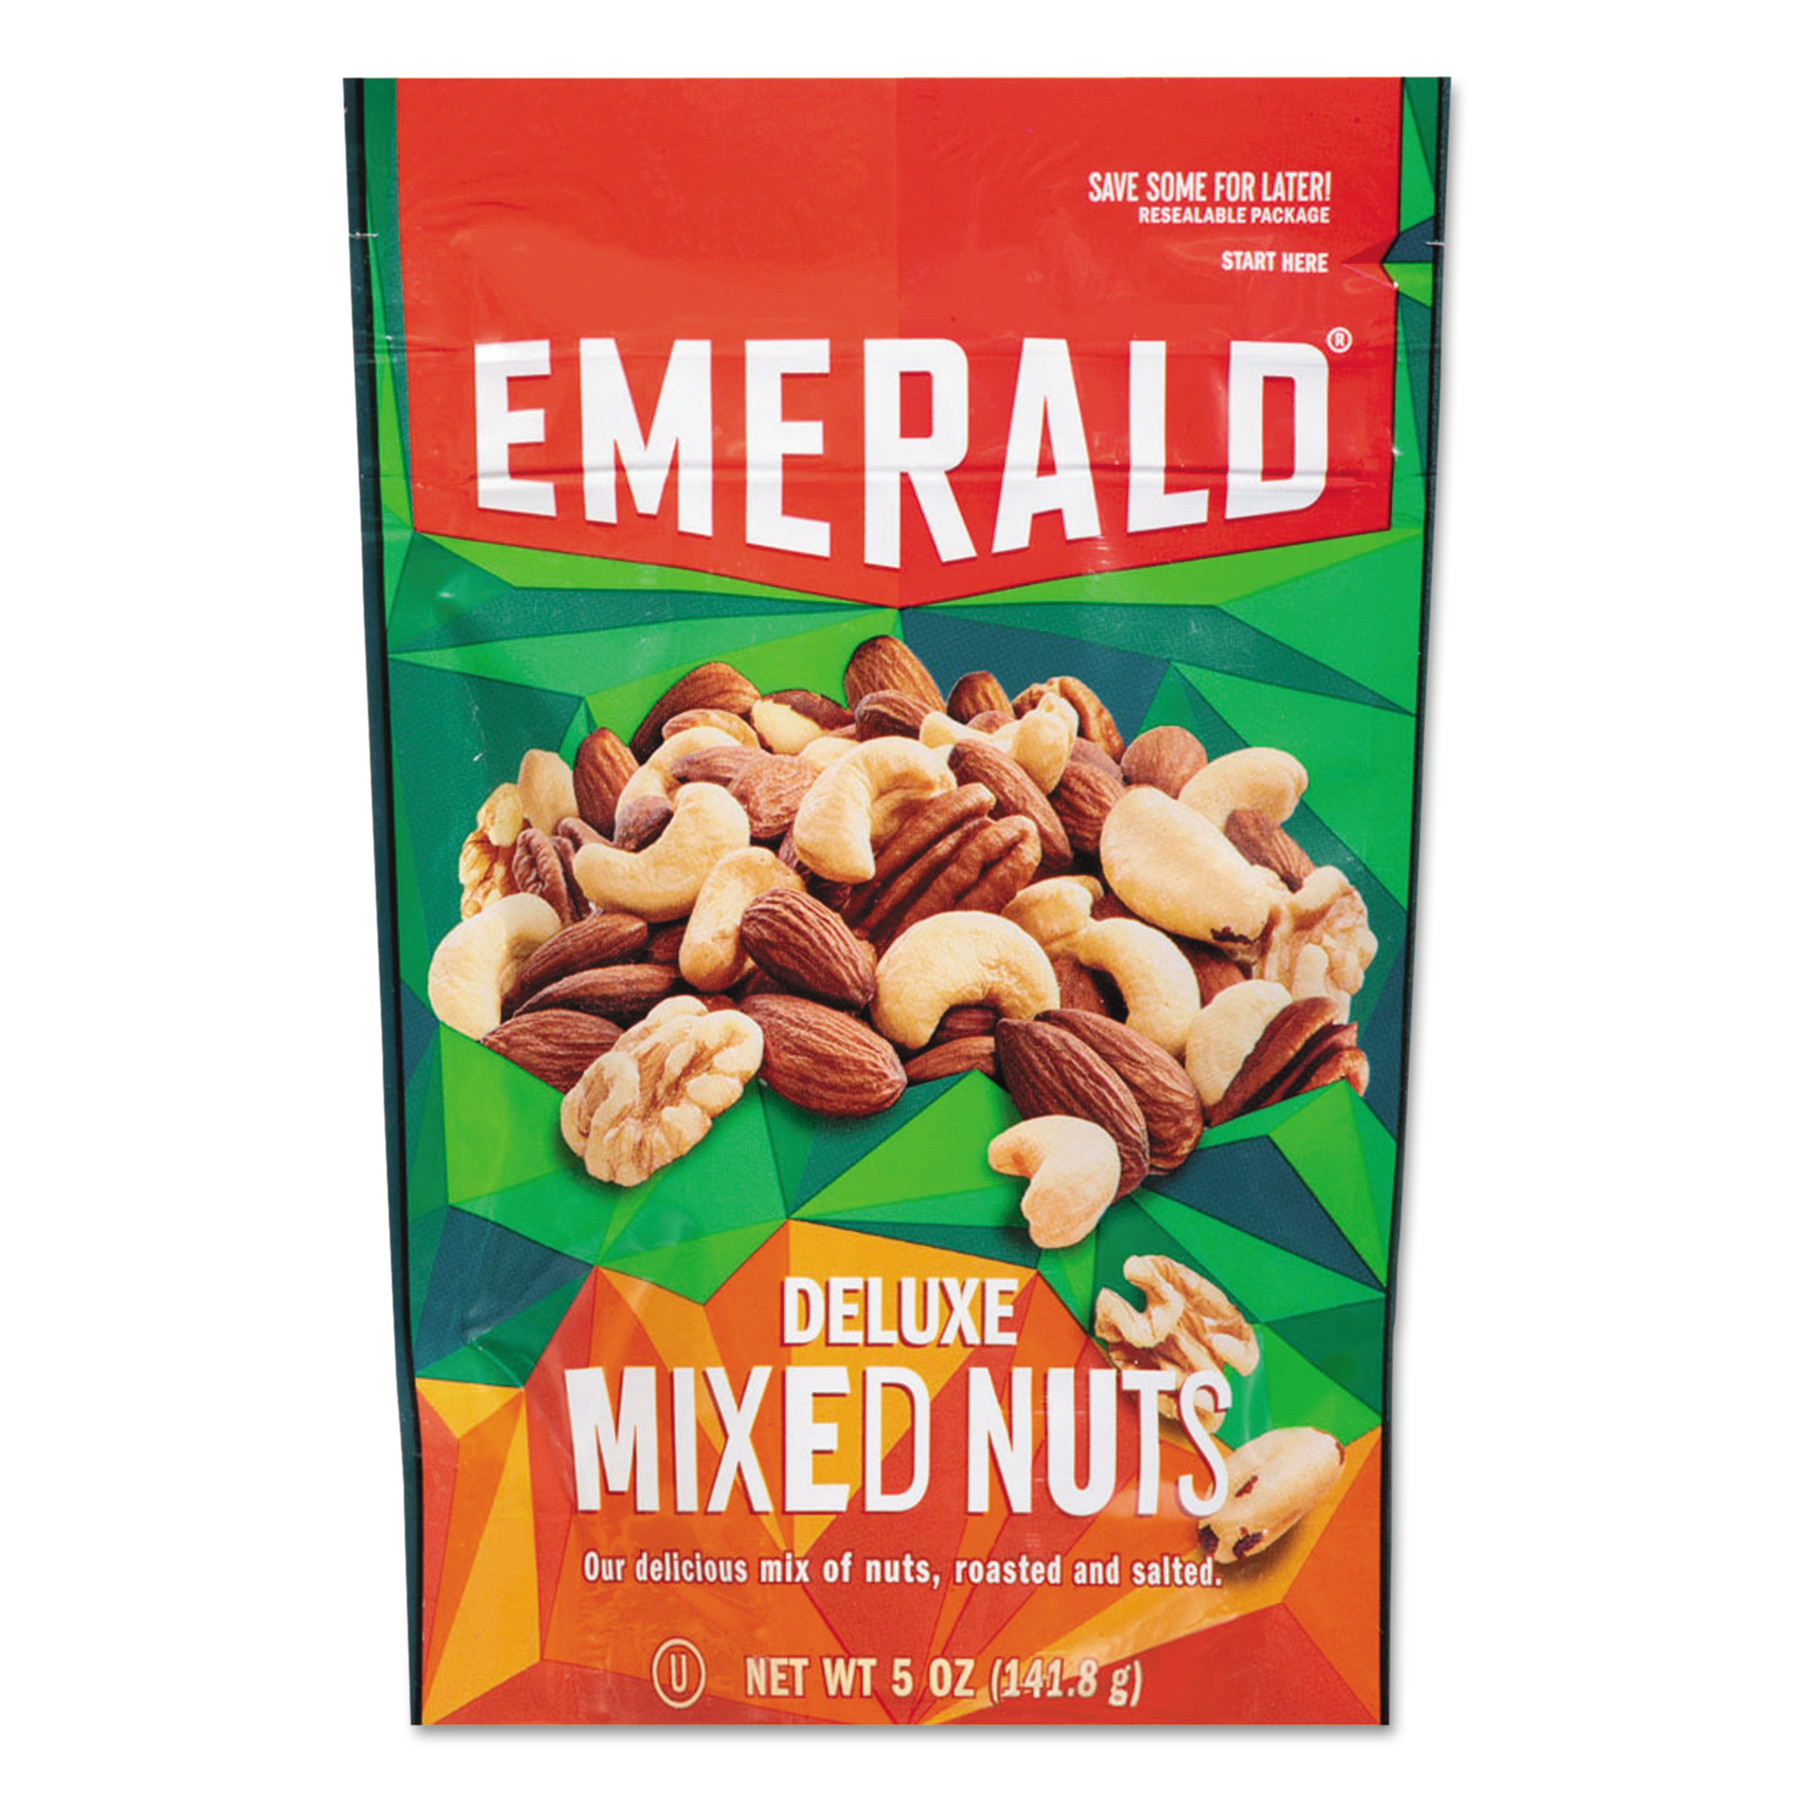 Emerald Deluxe Mixed Nuts, 5 oz, (Pack of 6)